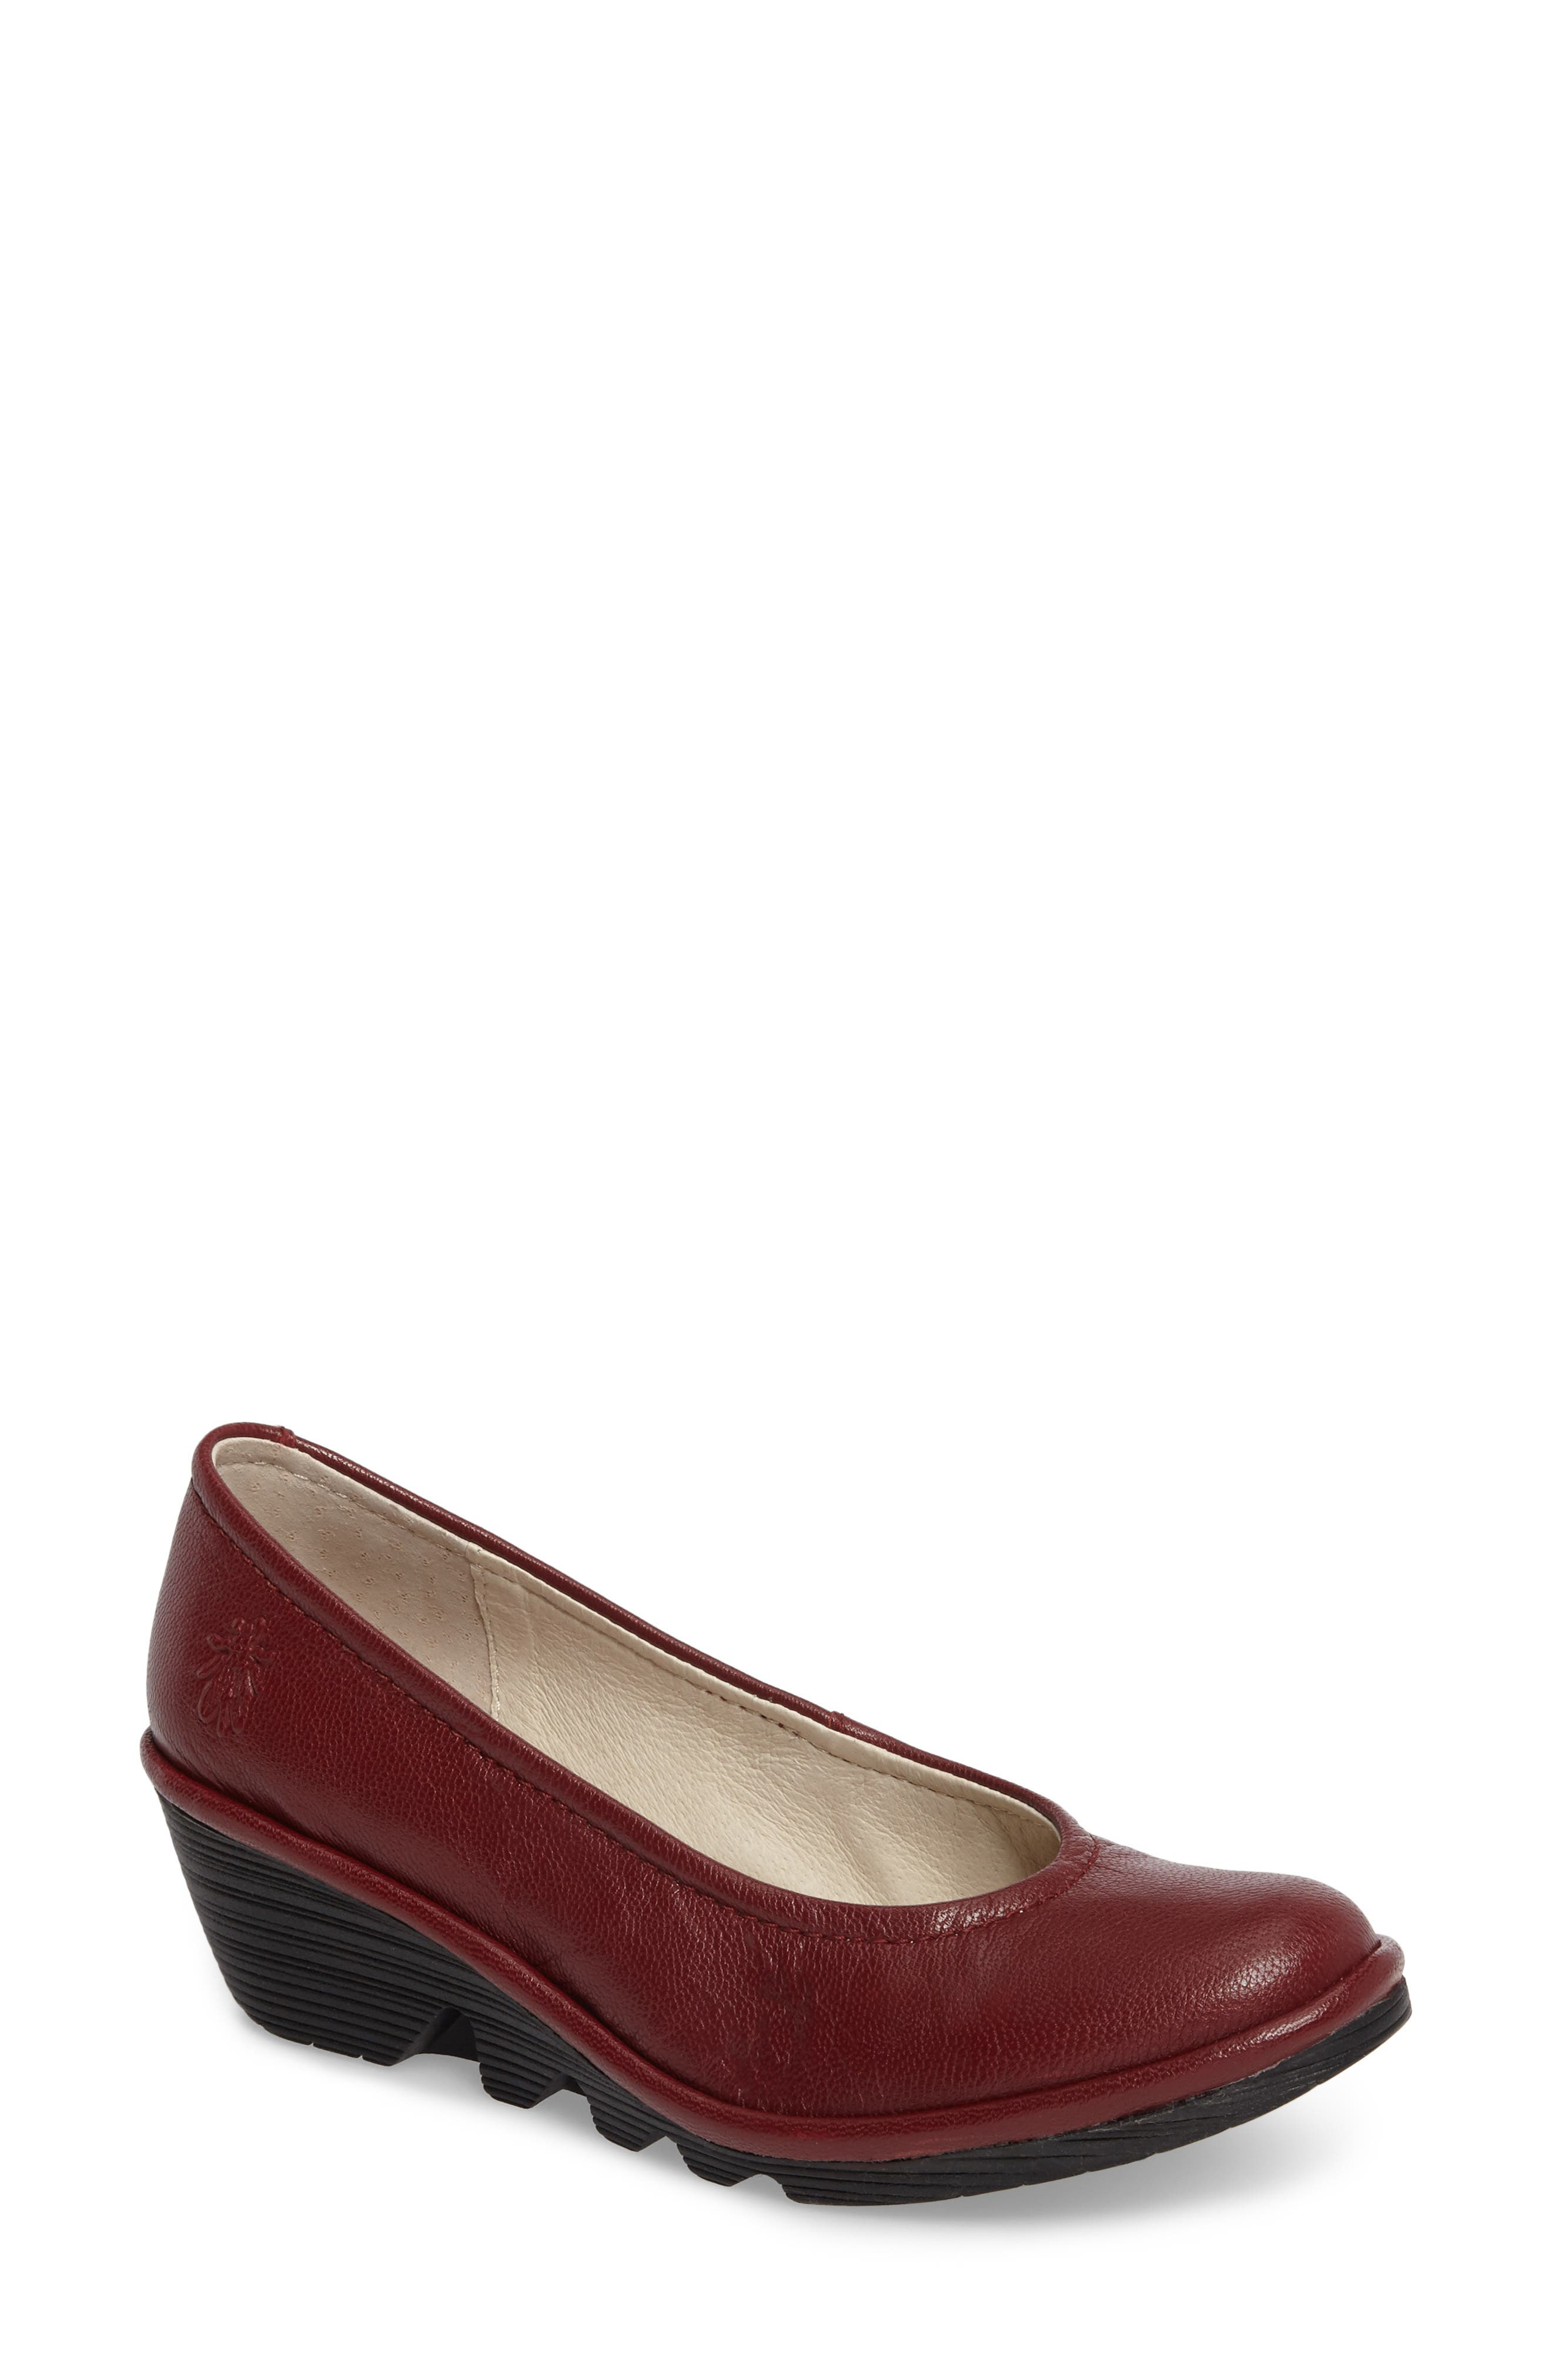 Fly London Mid Wedge Pump - Red